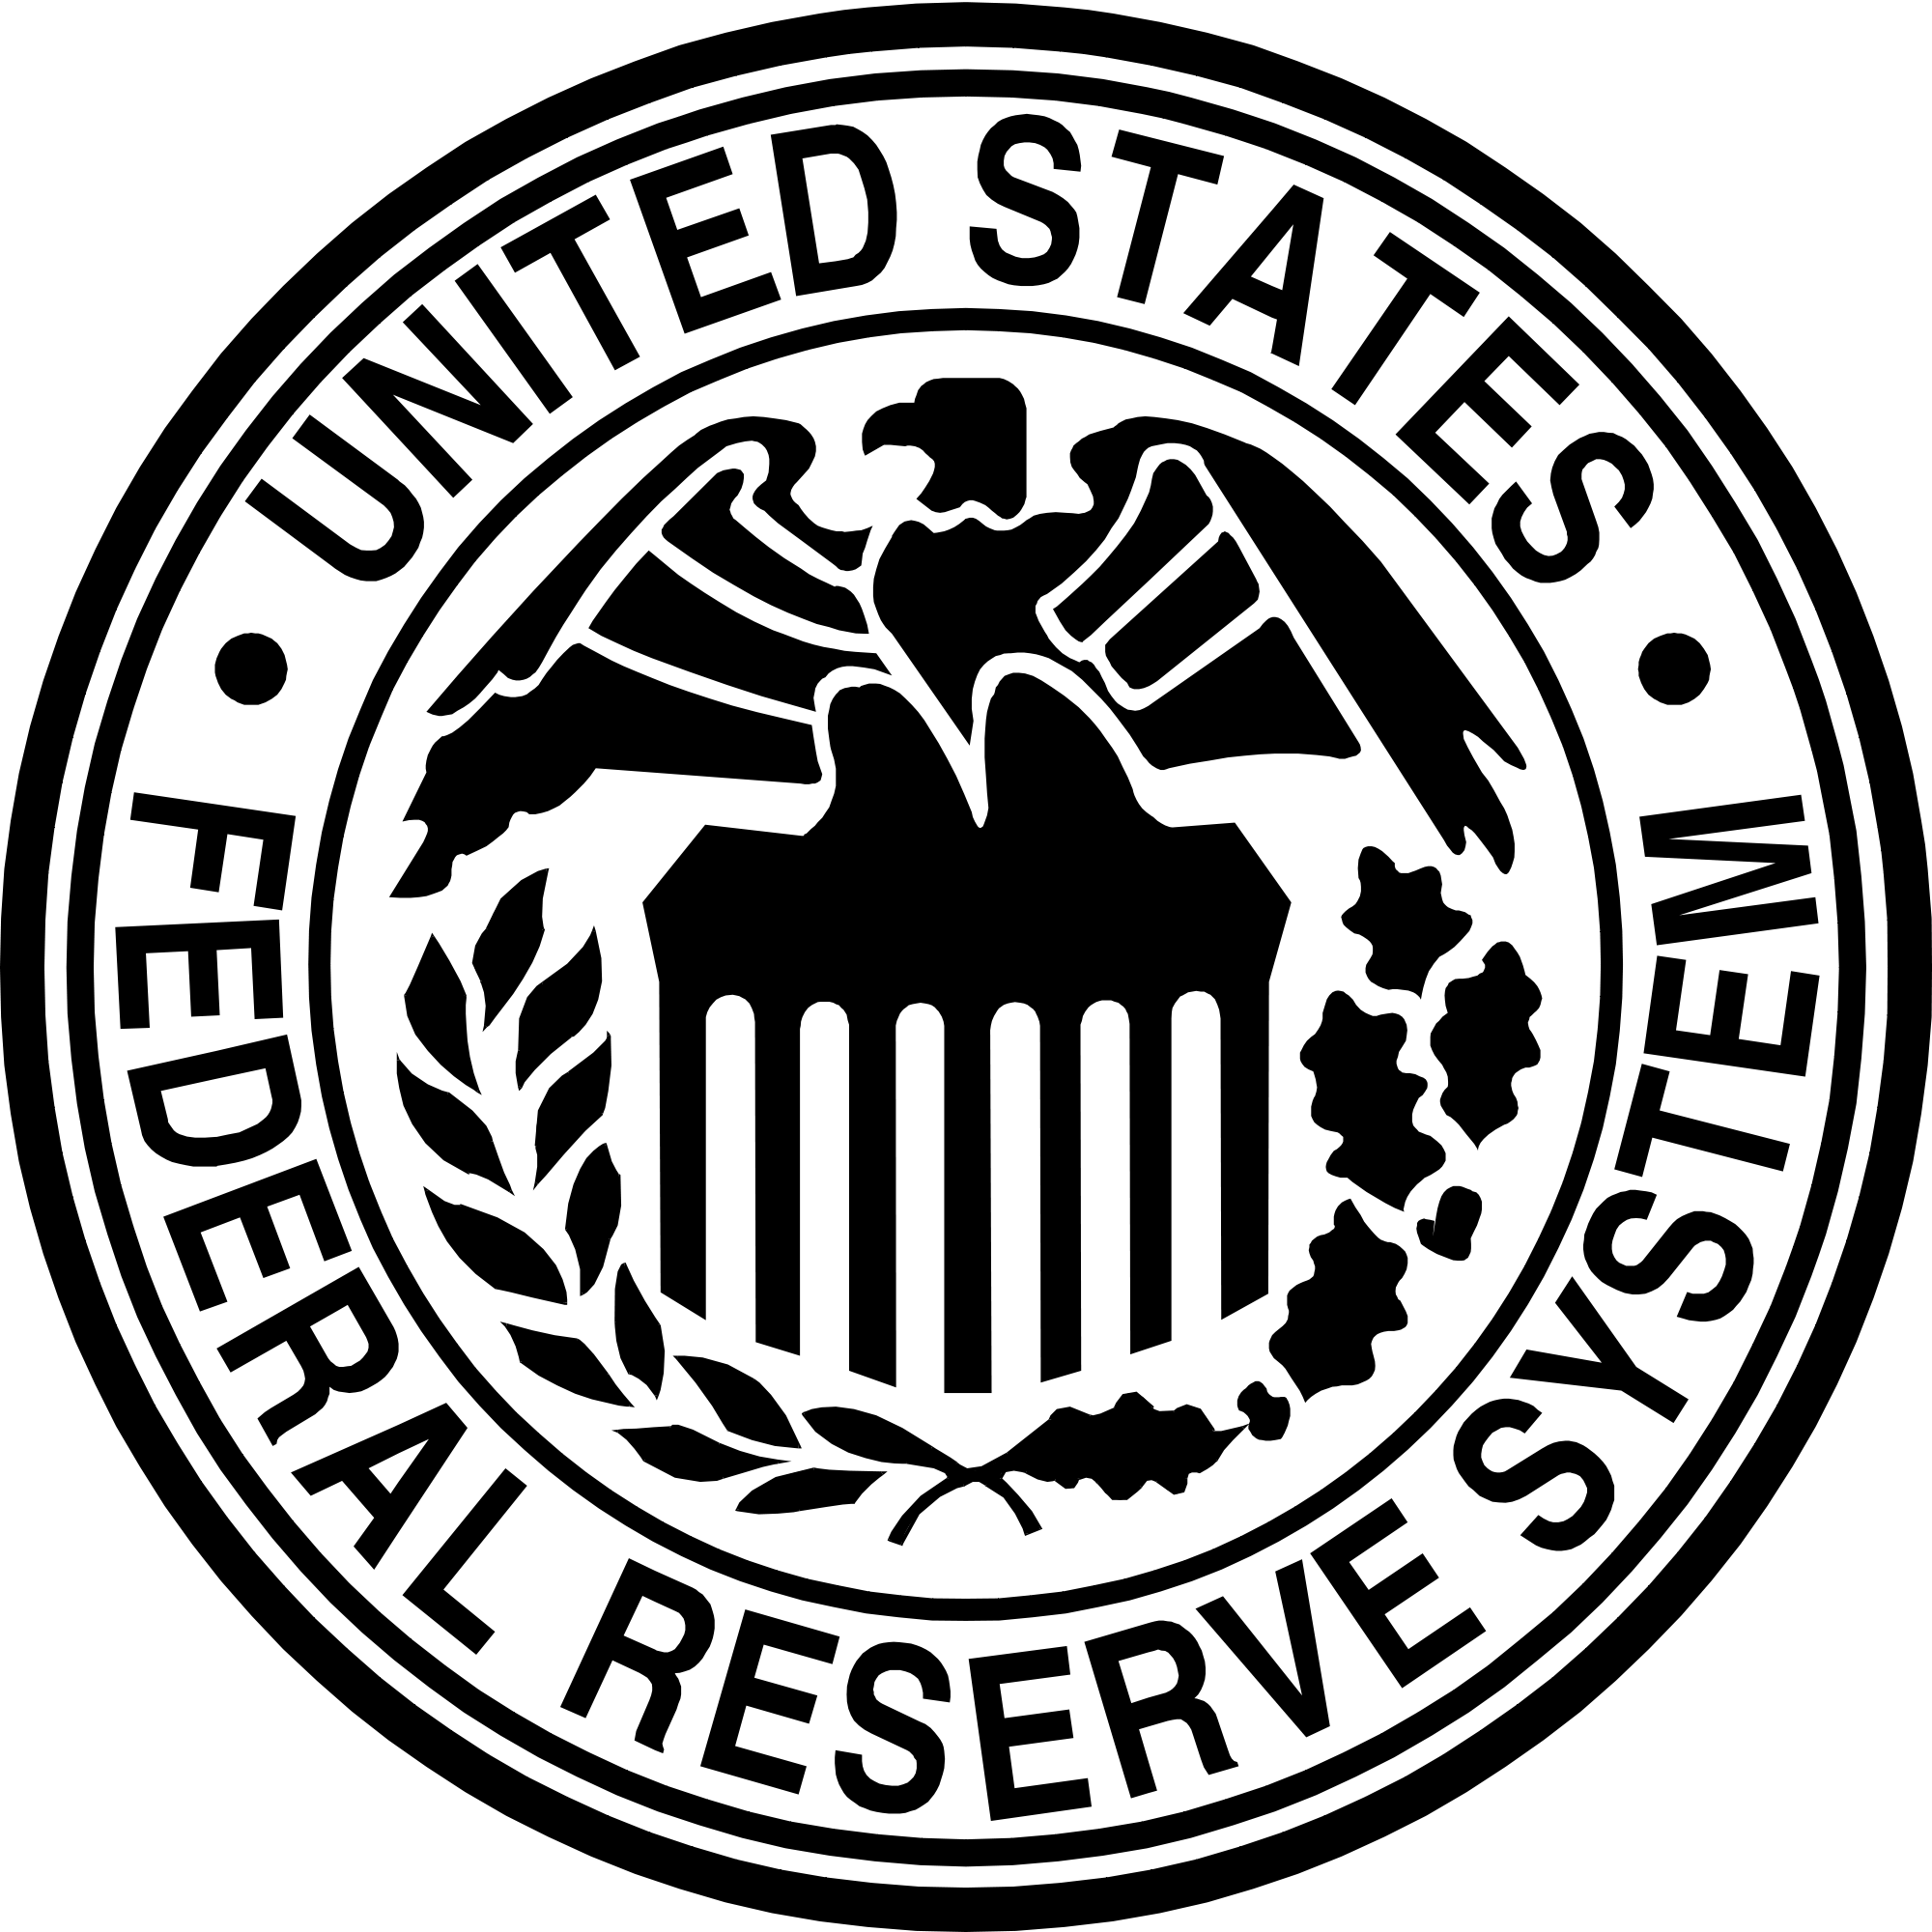 Federal system clipart.